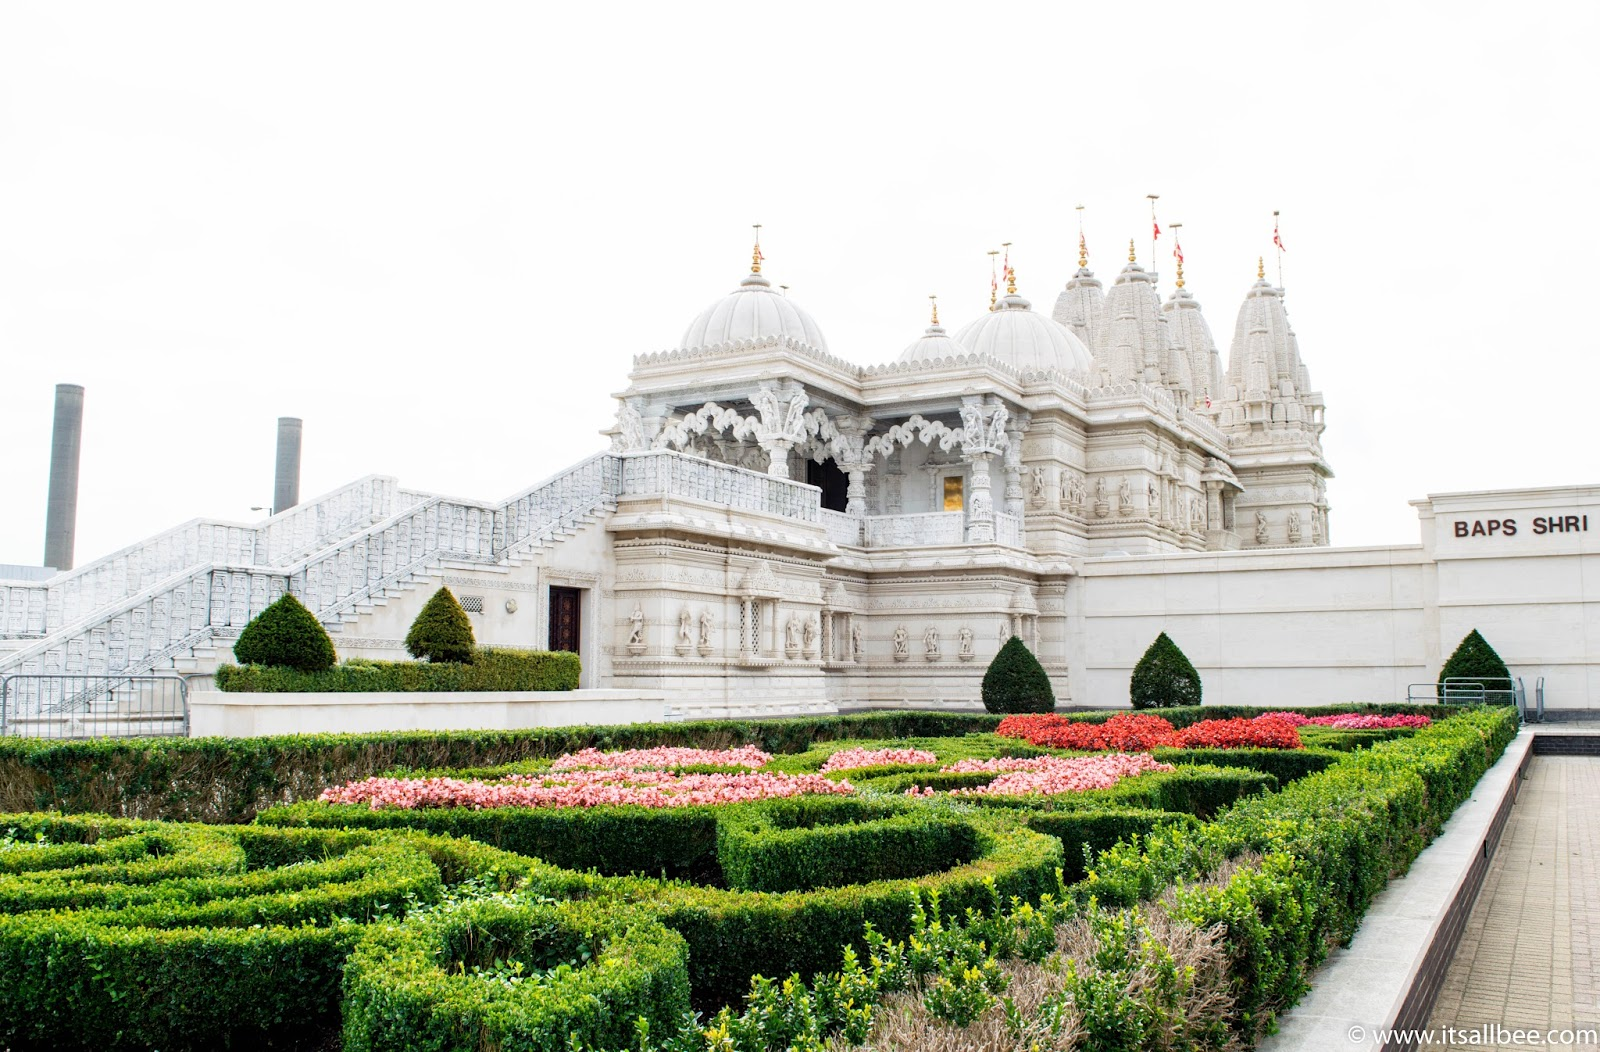 London's Insanely Beautiful Temple You Have To See - Neasden temple aka Baps Shri-Swaninarayan Mandir